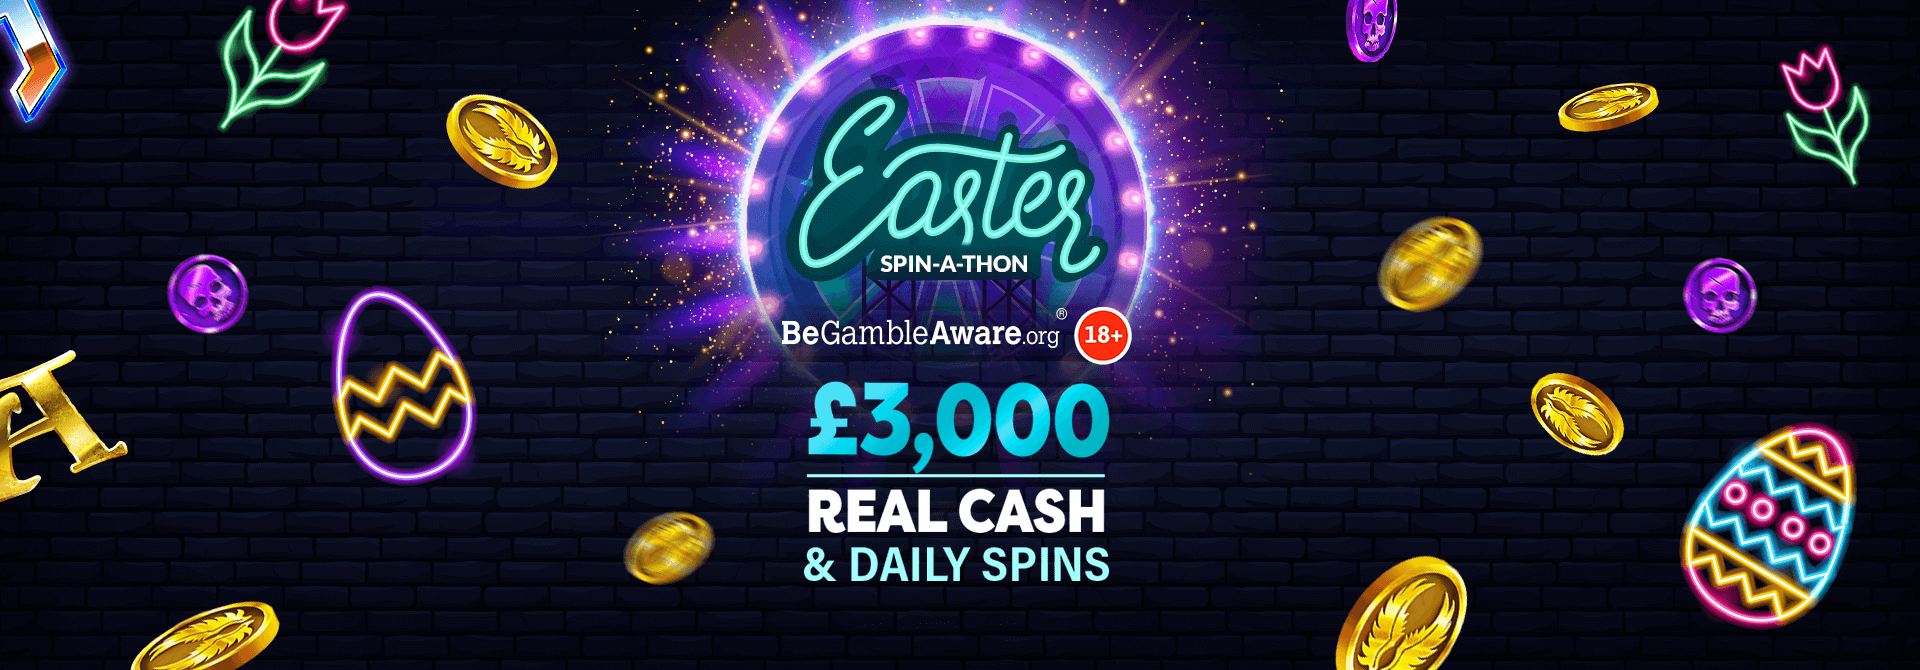 Did you manage to spin-a-win with Dr Slot's Easter Spin-a-thon?